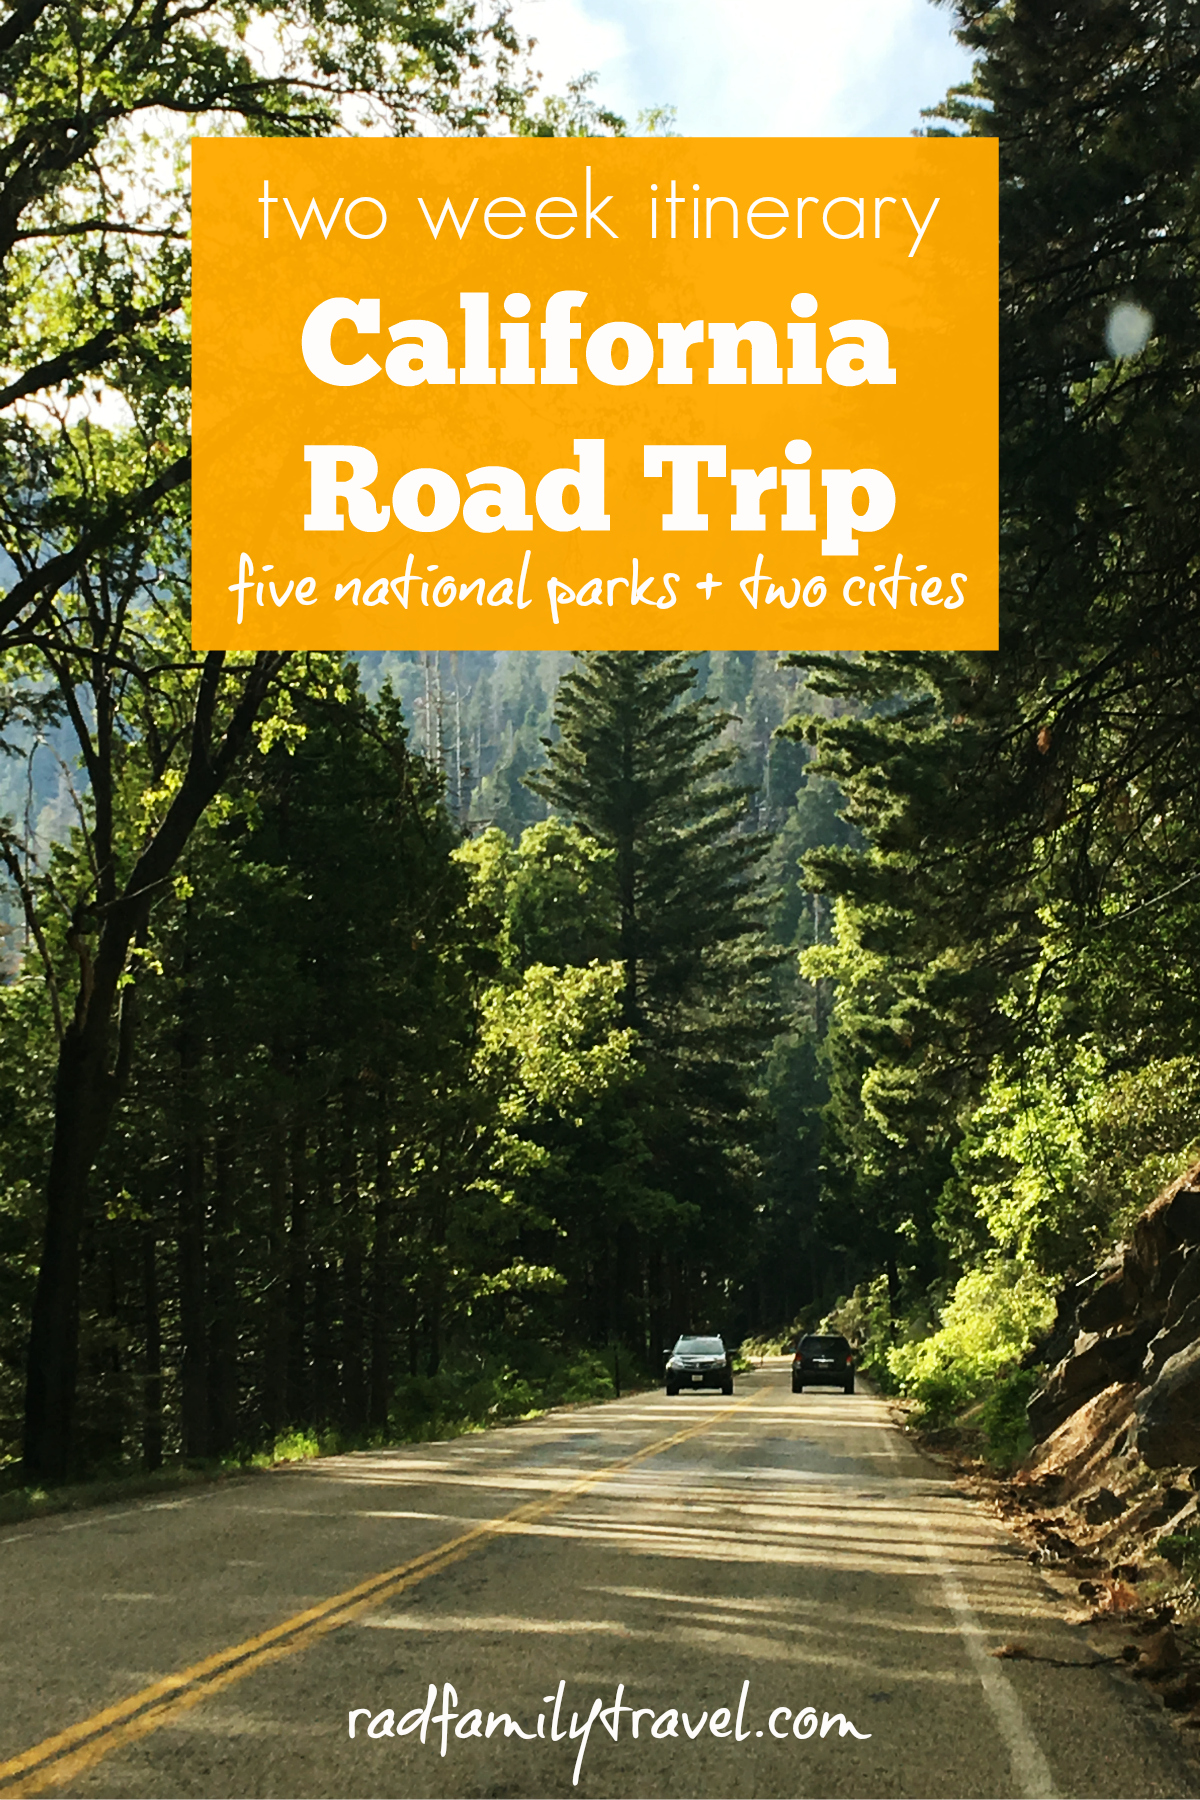 Budgeting and planning California road trip